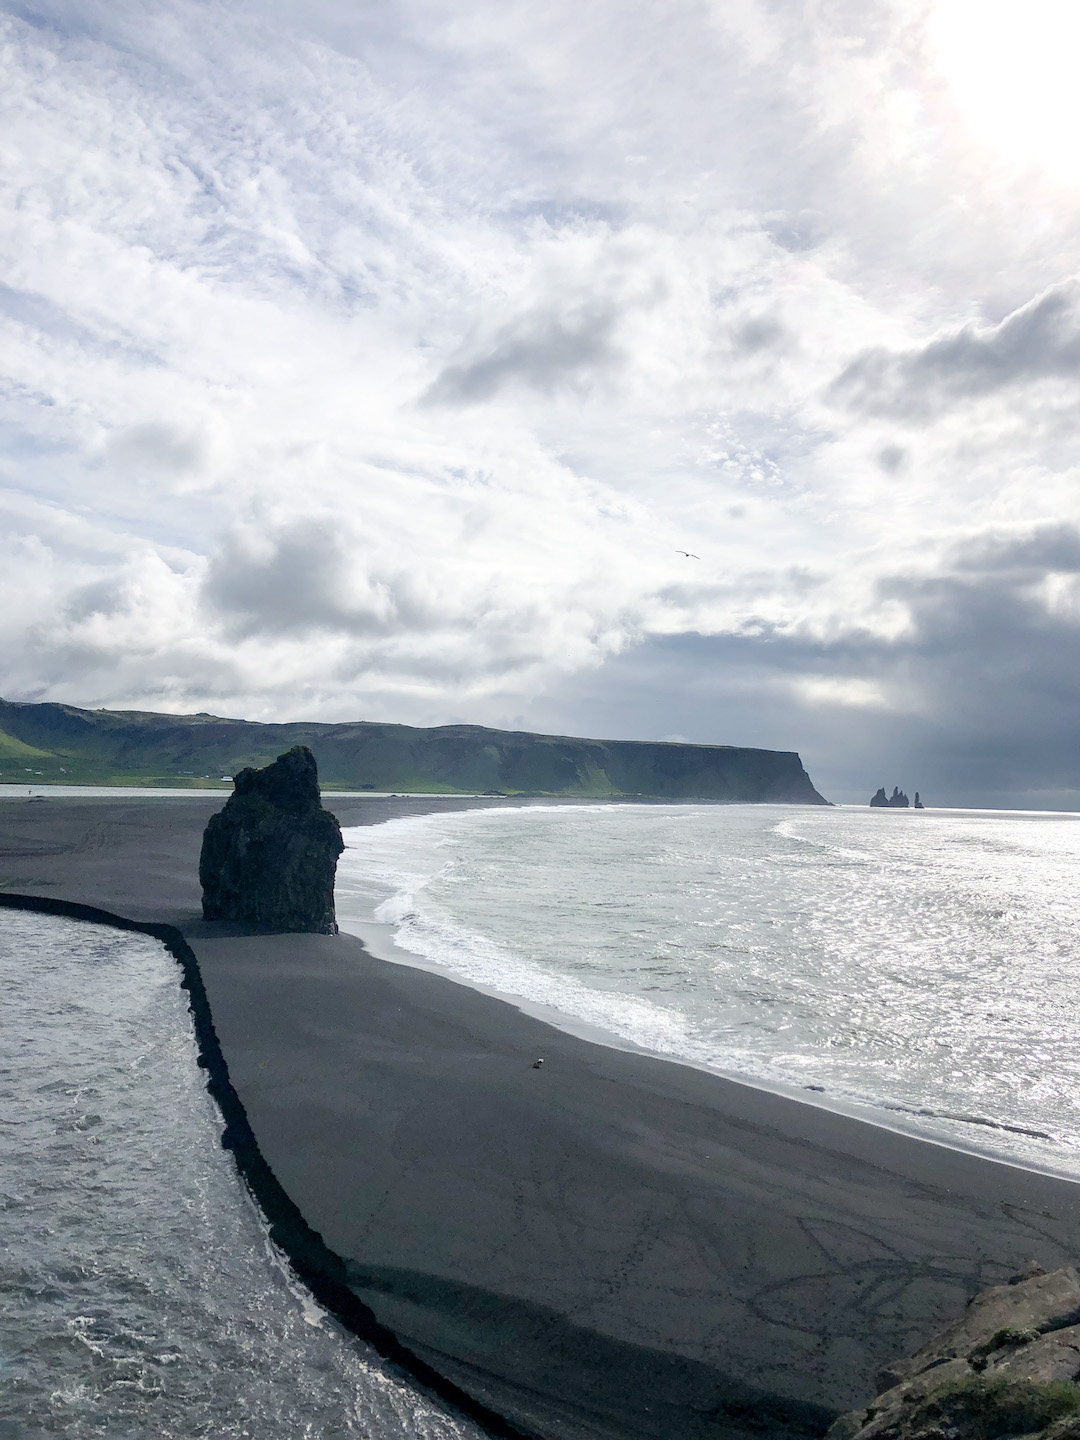 Views from Dyrholaey, Iceland